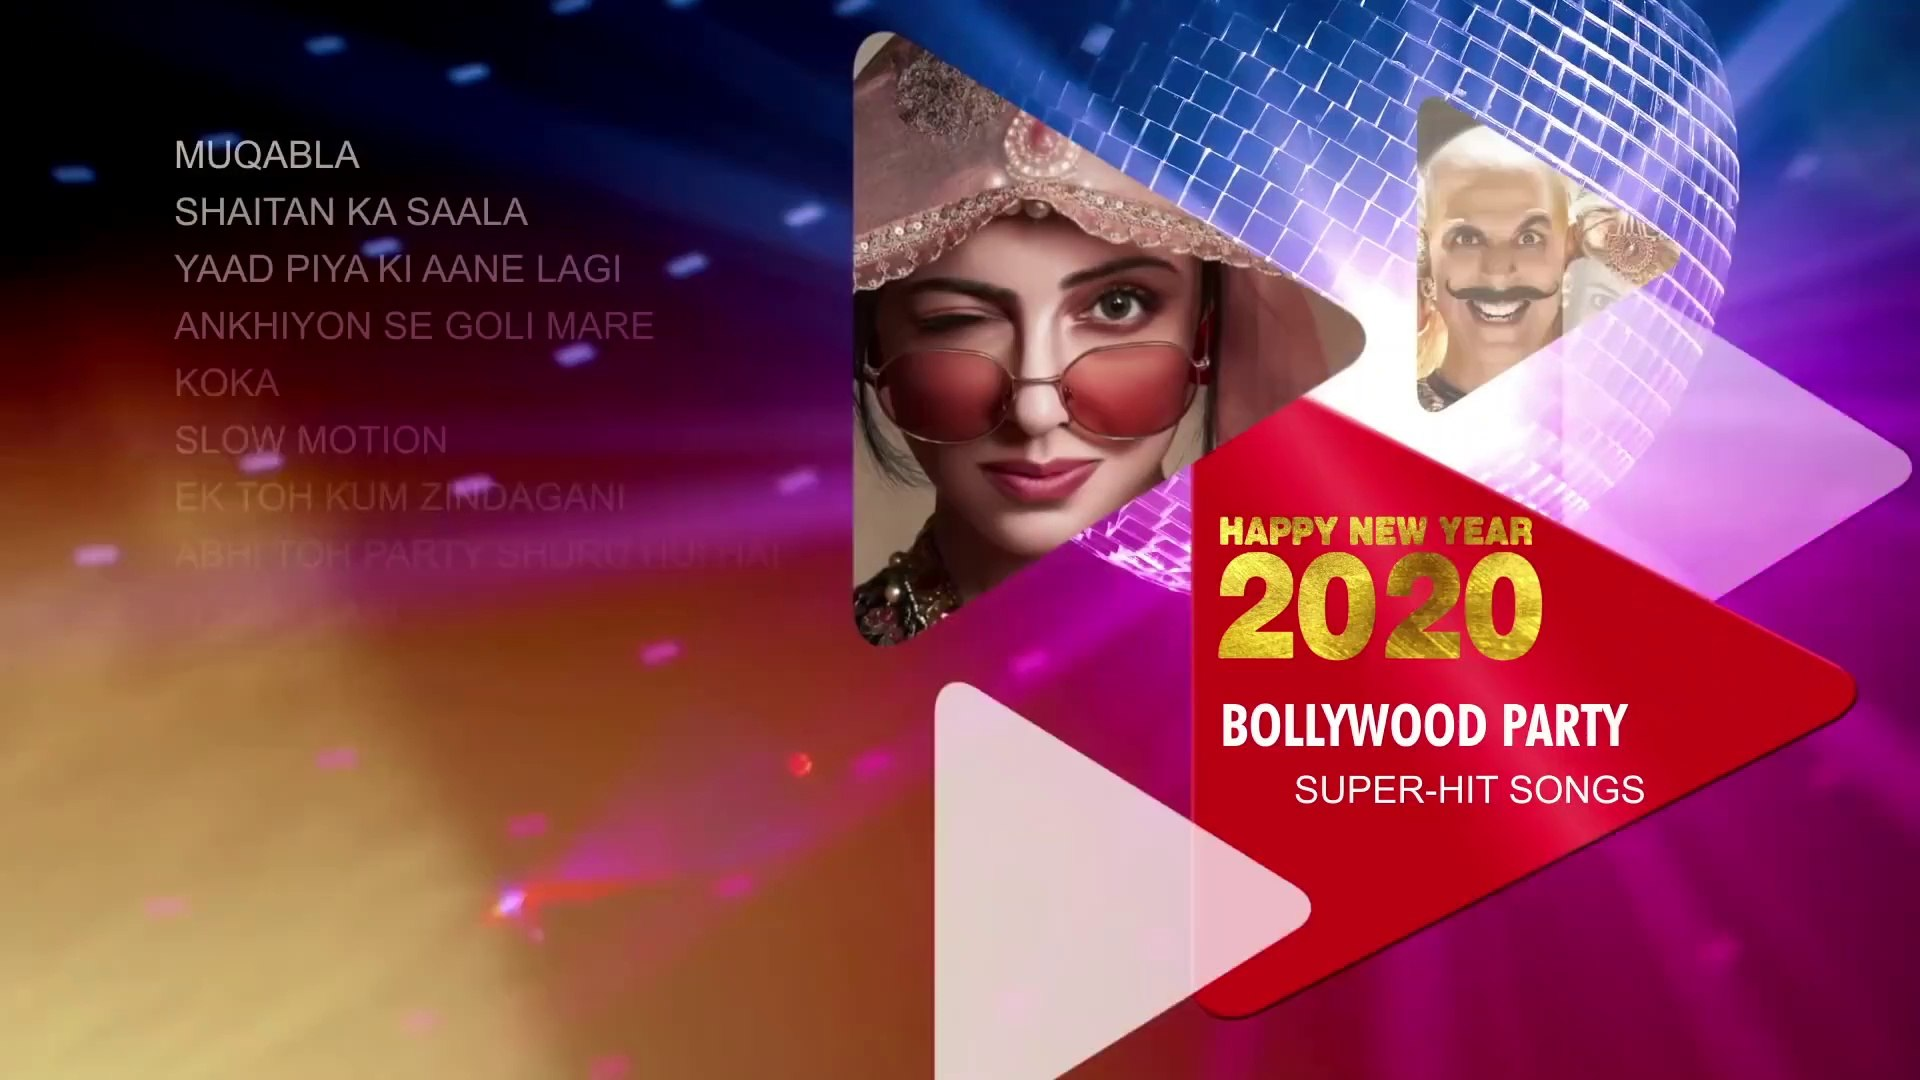 Happy New Year 2020 Bollywood Party Super Hit Songs T Series Video Jukebox 1080 X 1920 Video Dailymotion New hindi songs come out now and then, and almost each one of them is loved by the audience. happy new year 2020 bollywood party super hit songs t series video jukebox 1080 x 1920